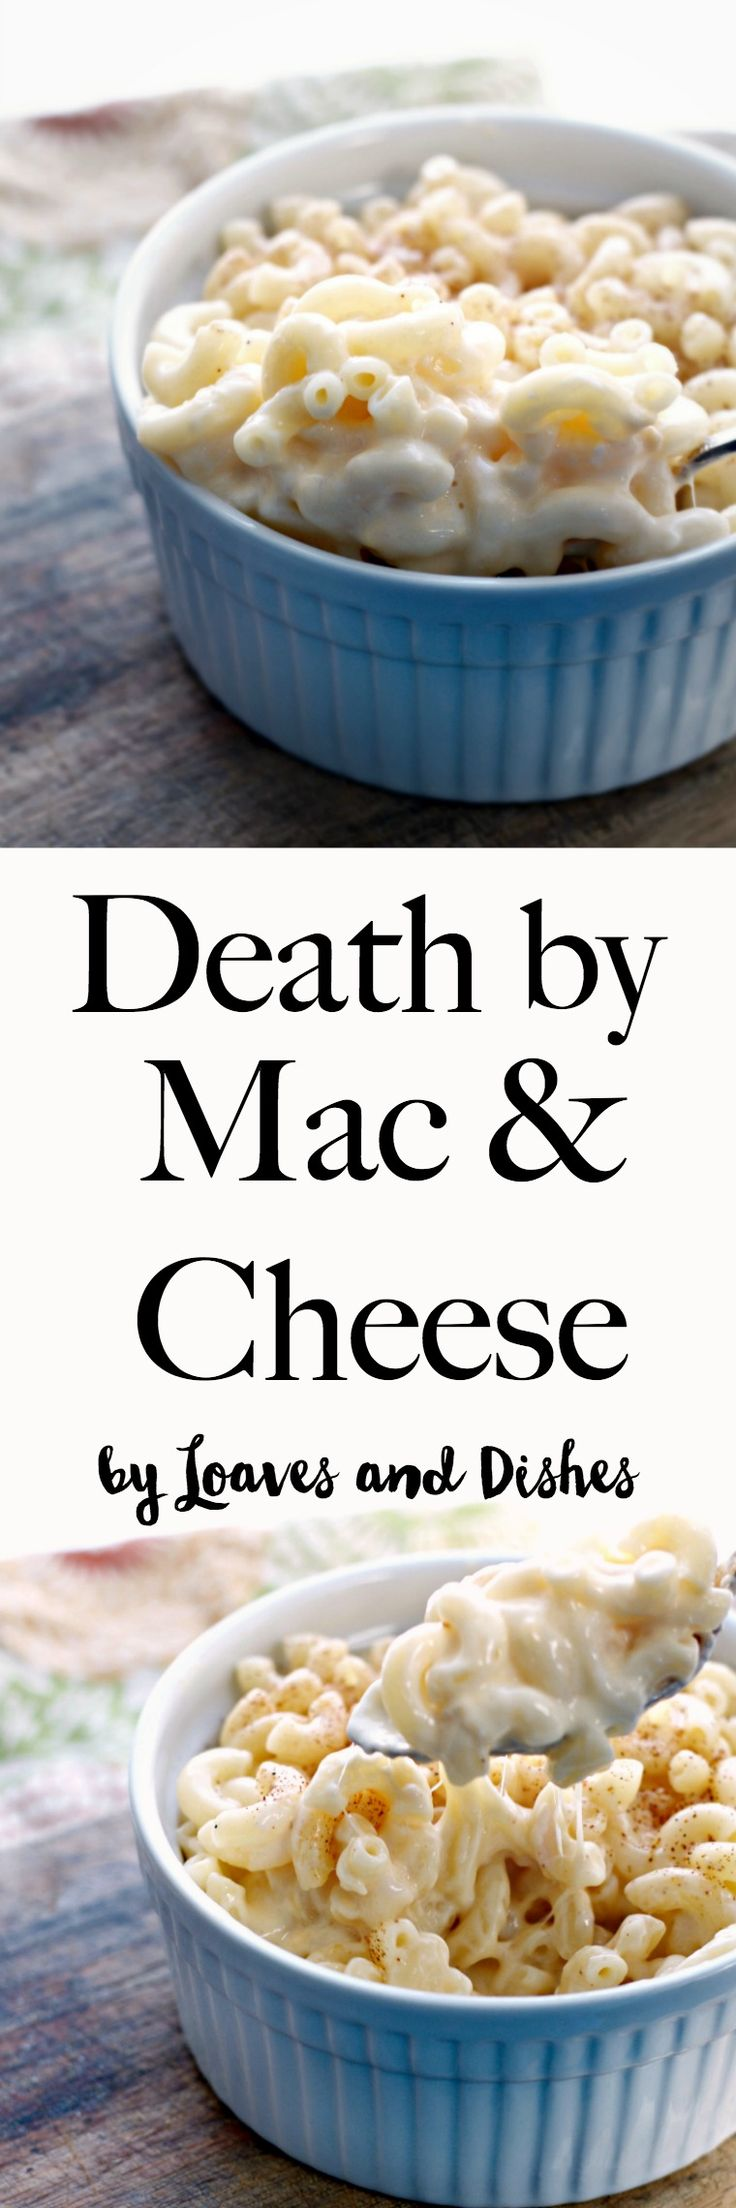 Creamy delicious stovetop and baked macaroni and cheese with a surprise in the center. Easy and make for a crowd! Cheesy homemade southern macaroni and cheese at its best - like Pioneer woman or Paula Deen might make. Uses Velveeta and the best heavy cream